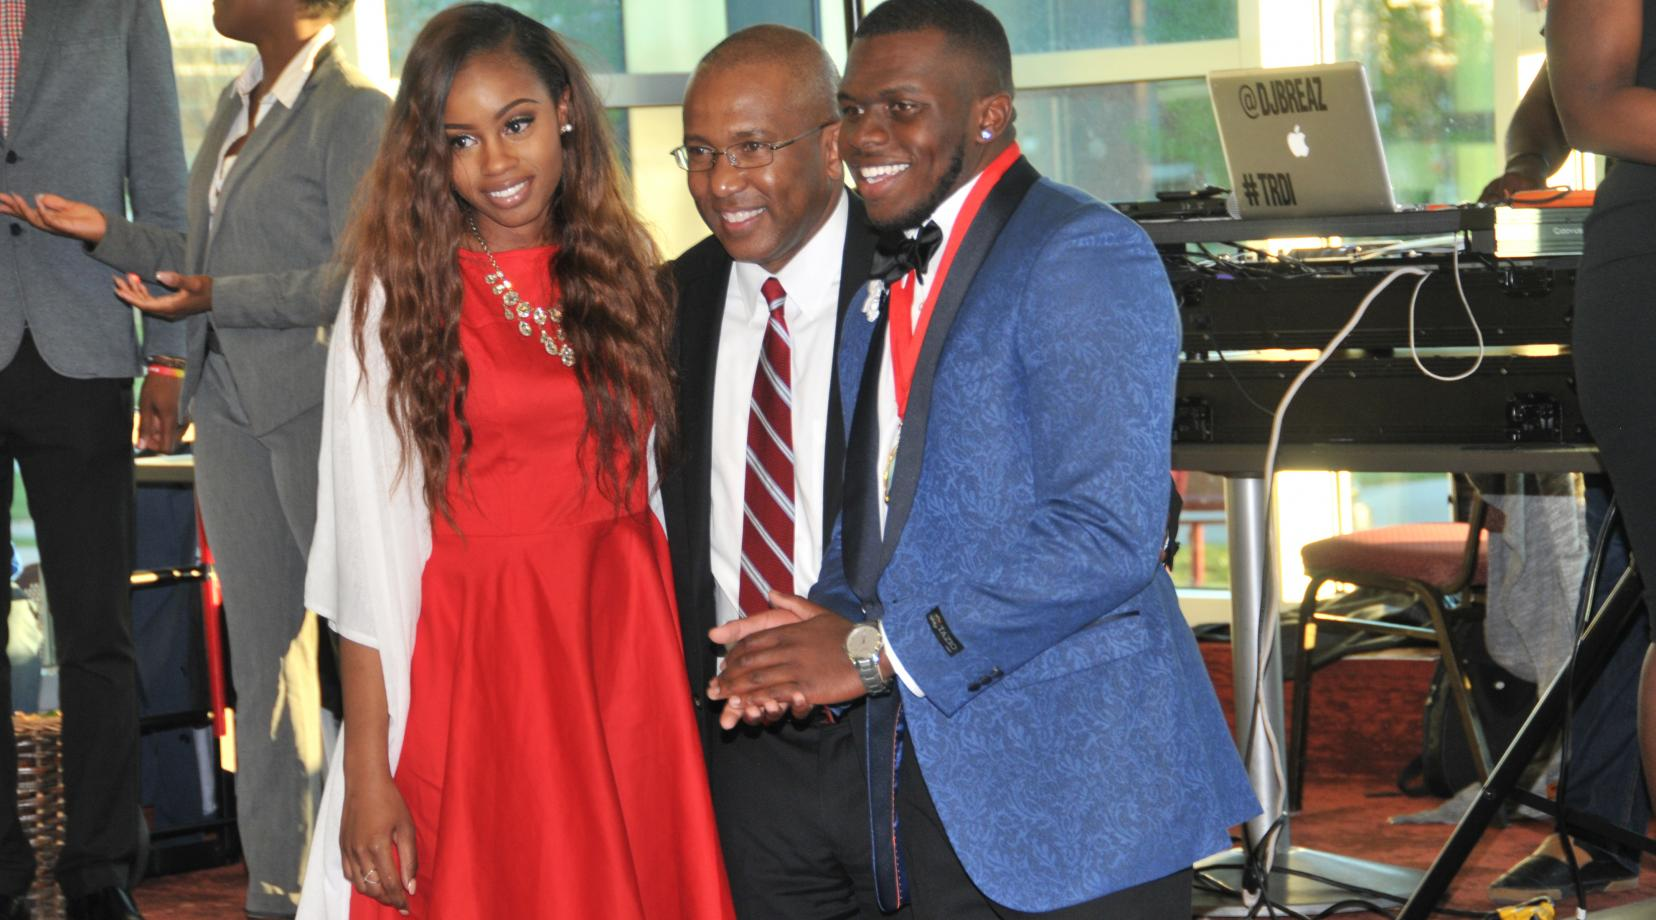 <p>DSU President Harry L. Williams (center) poses with the newly elected 2017-2018 Mr. and Miss DSU, Michaela J. Rose (l) and Kevin Perry.</p>